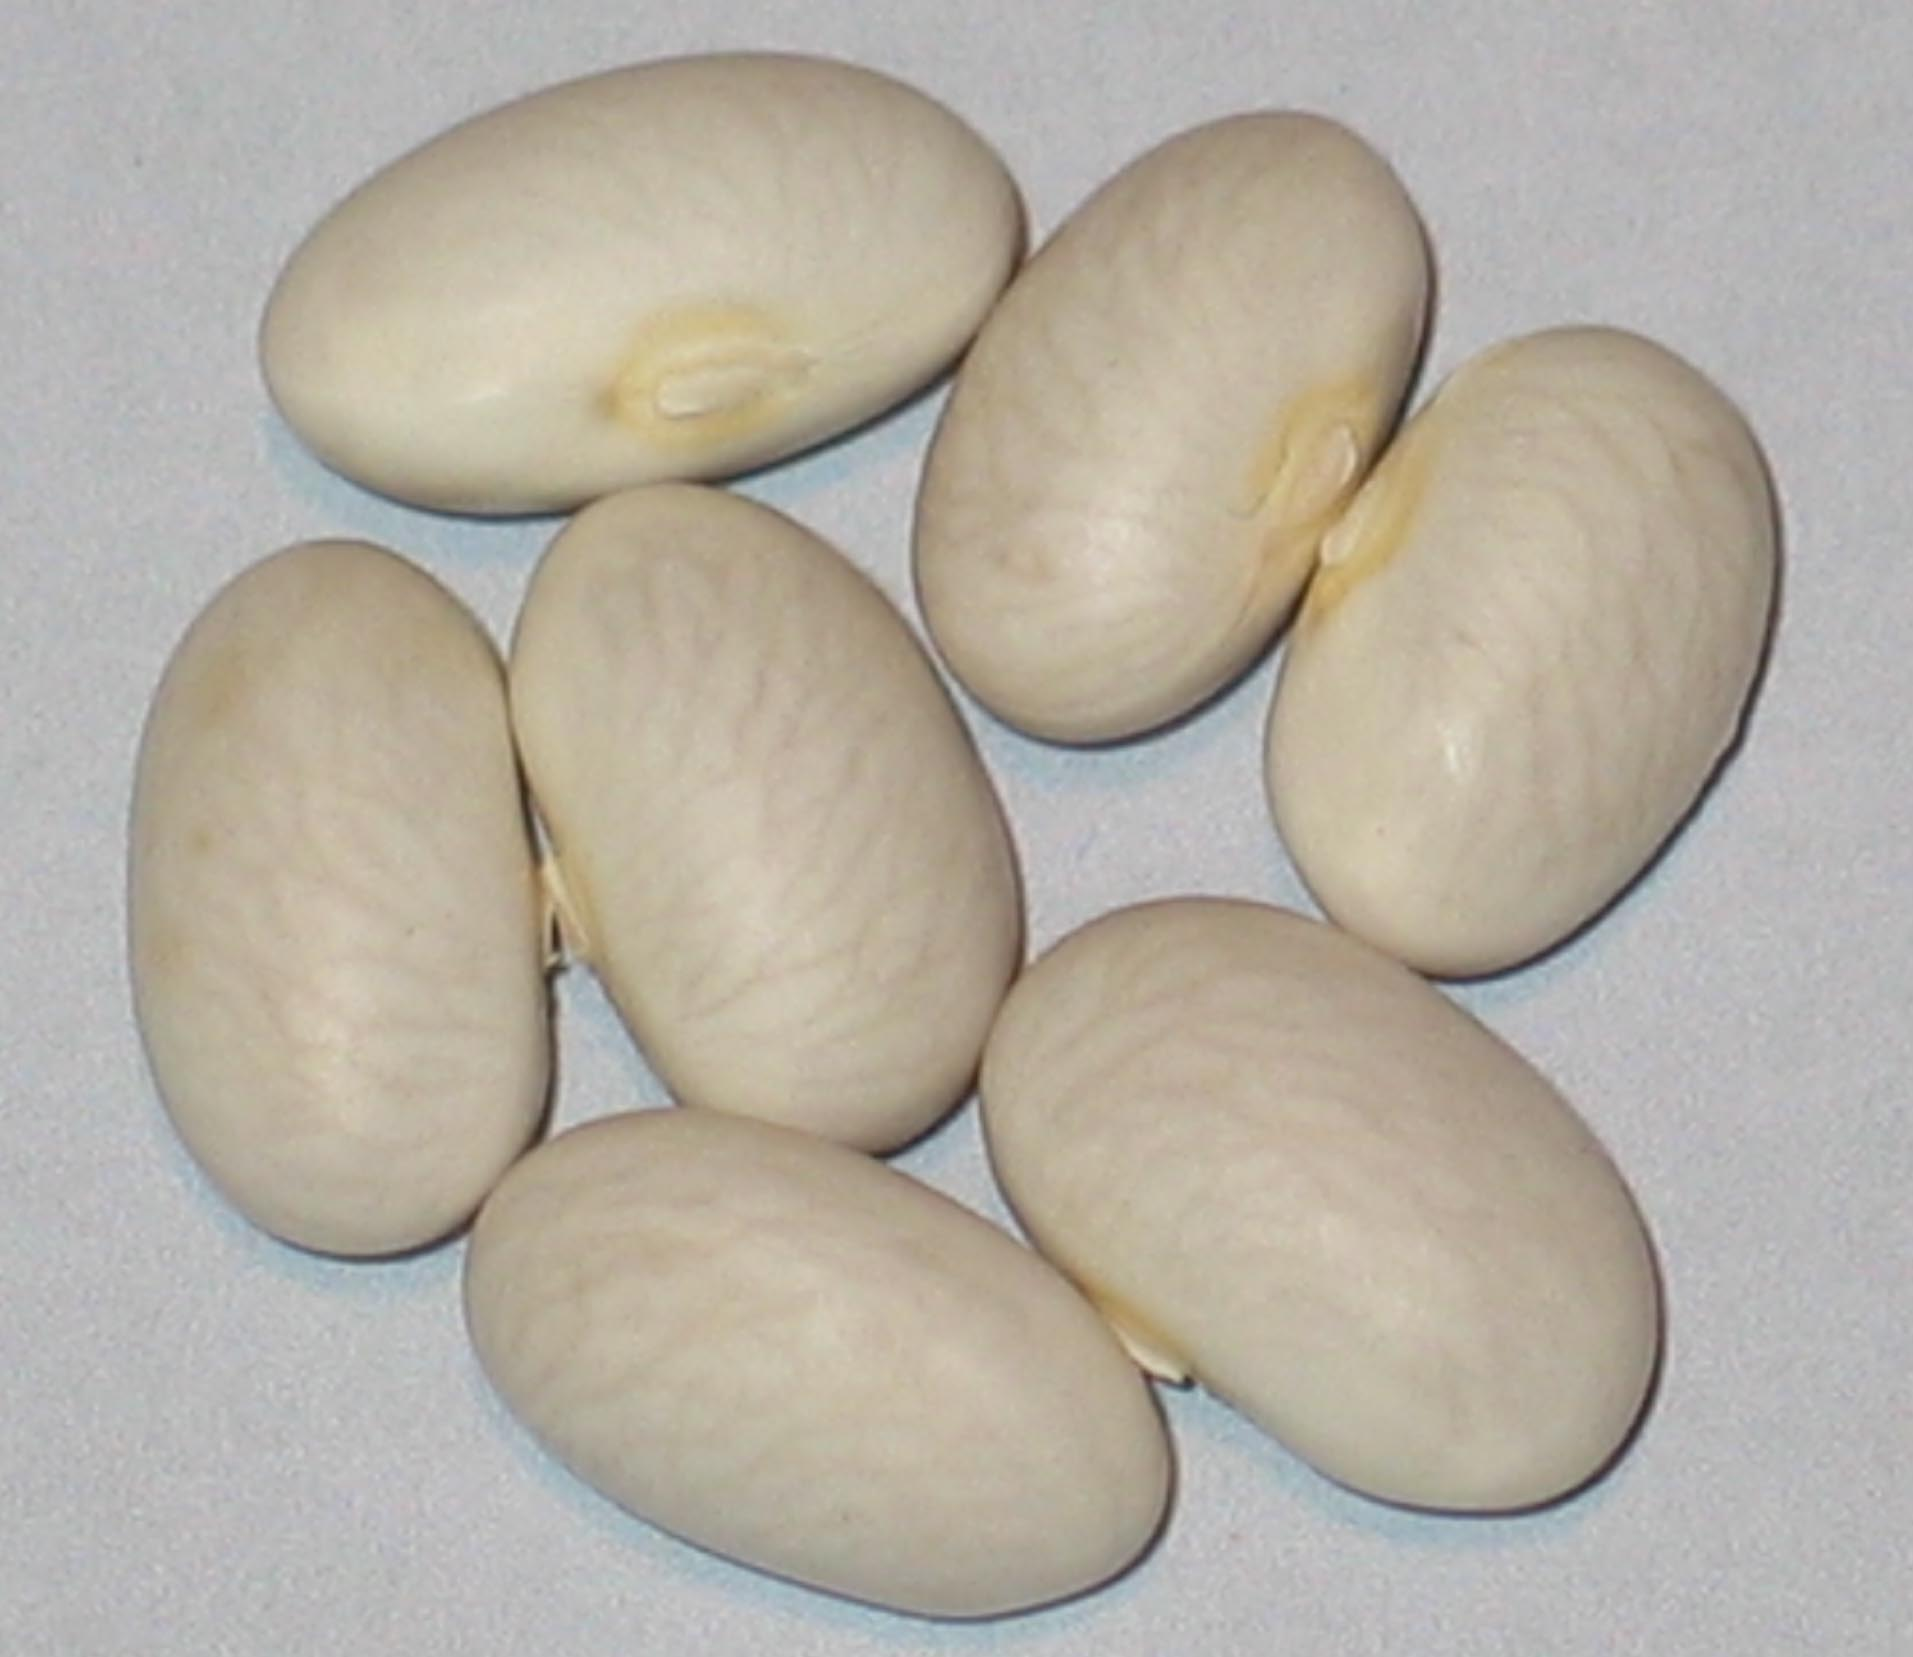 image of Deseronto Potato Bean beans